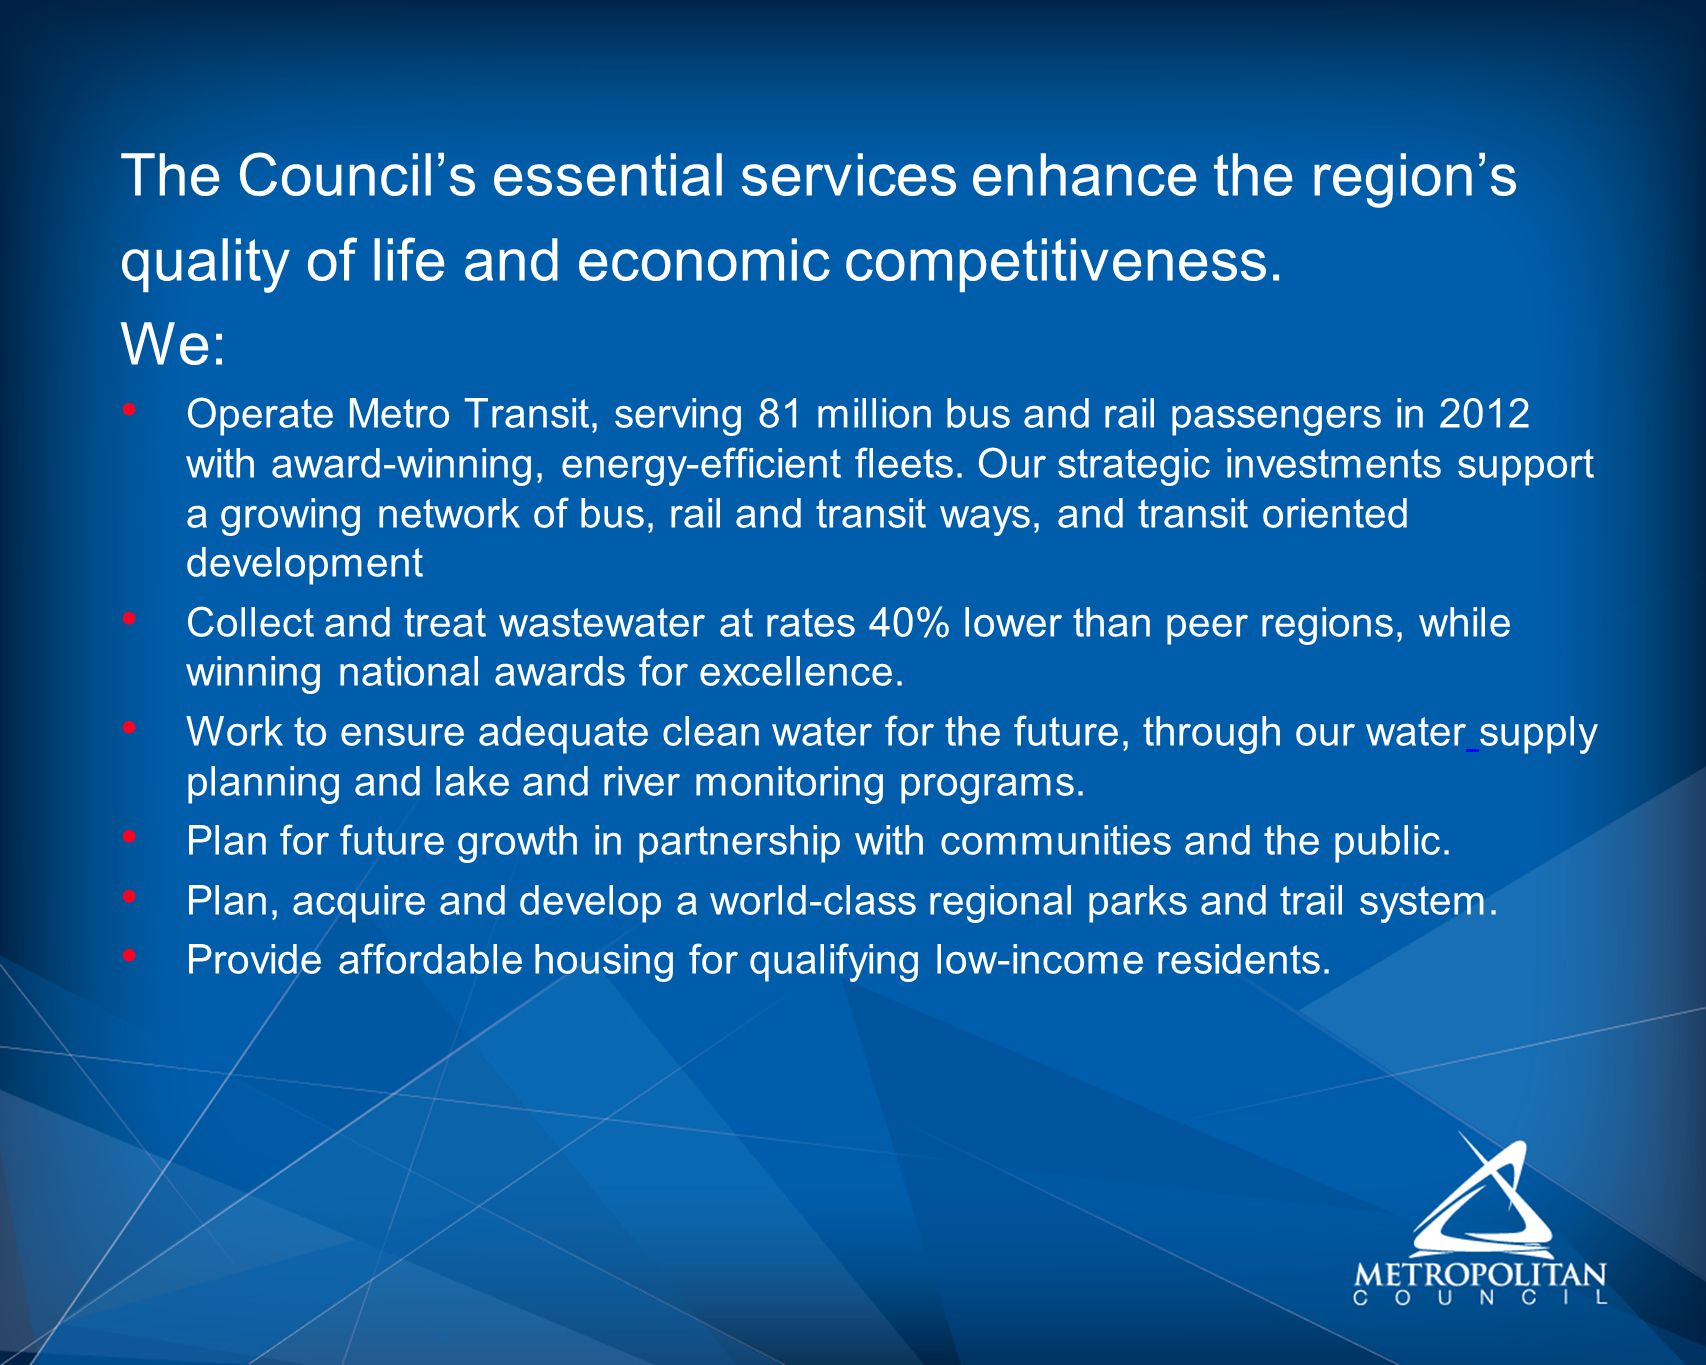 The Council's essential services enhance the region's